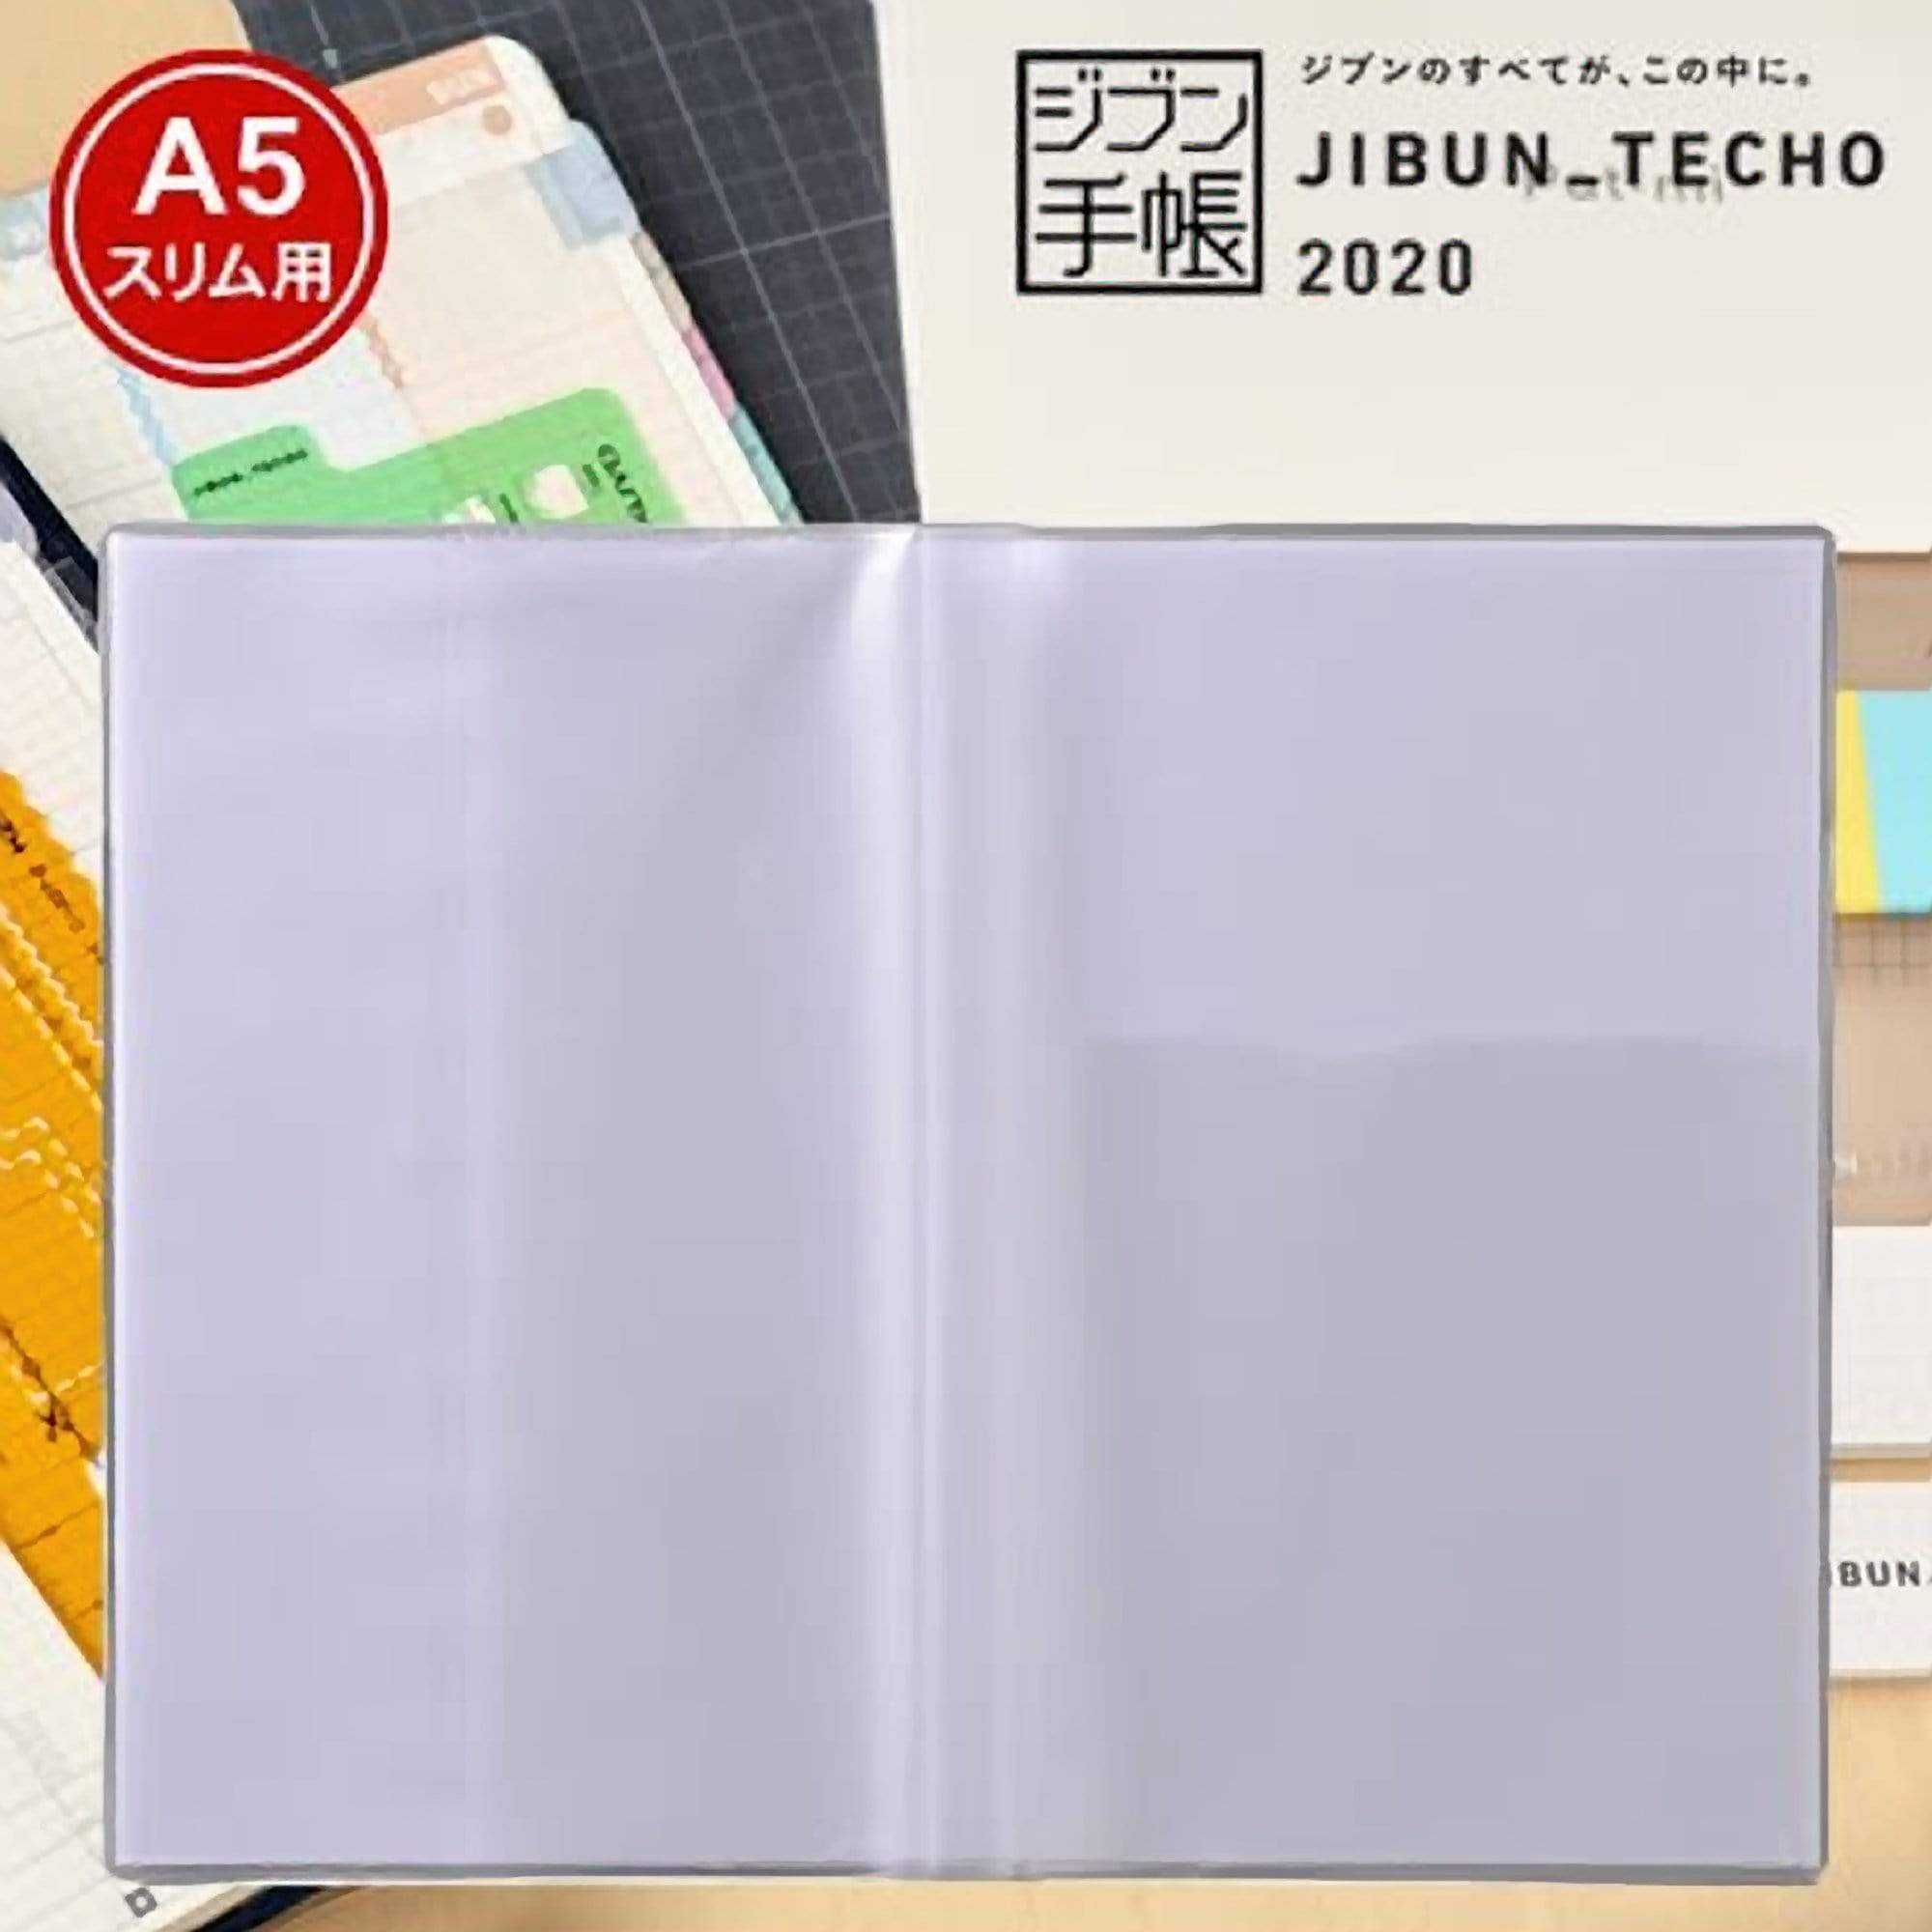 Kokuyo Jibun Techo Clear Cover | A5 Slim - The Stationery Life!